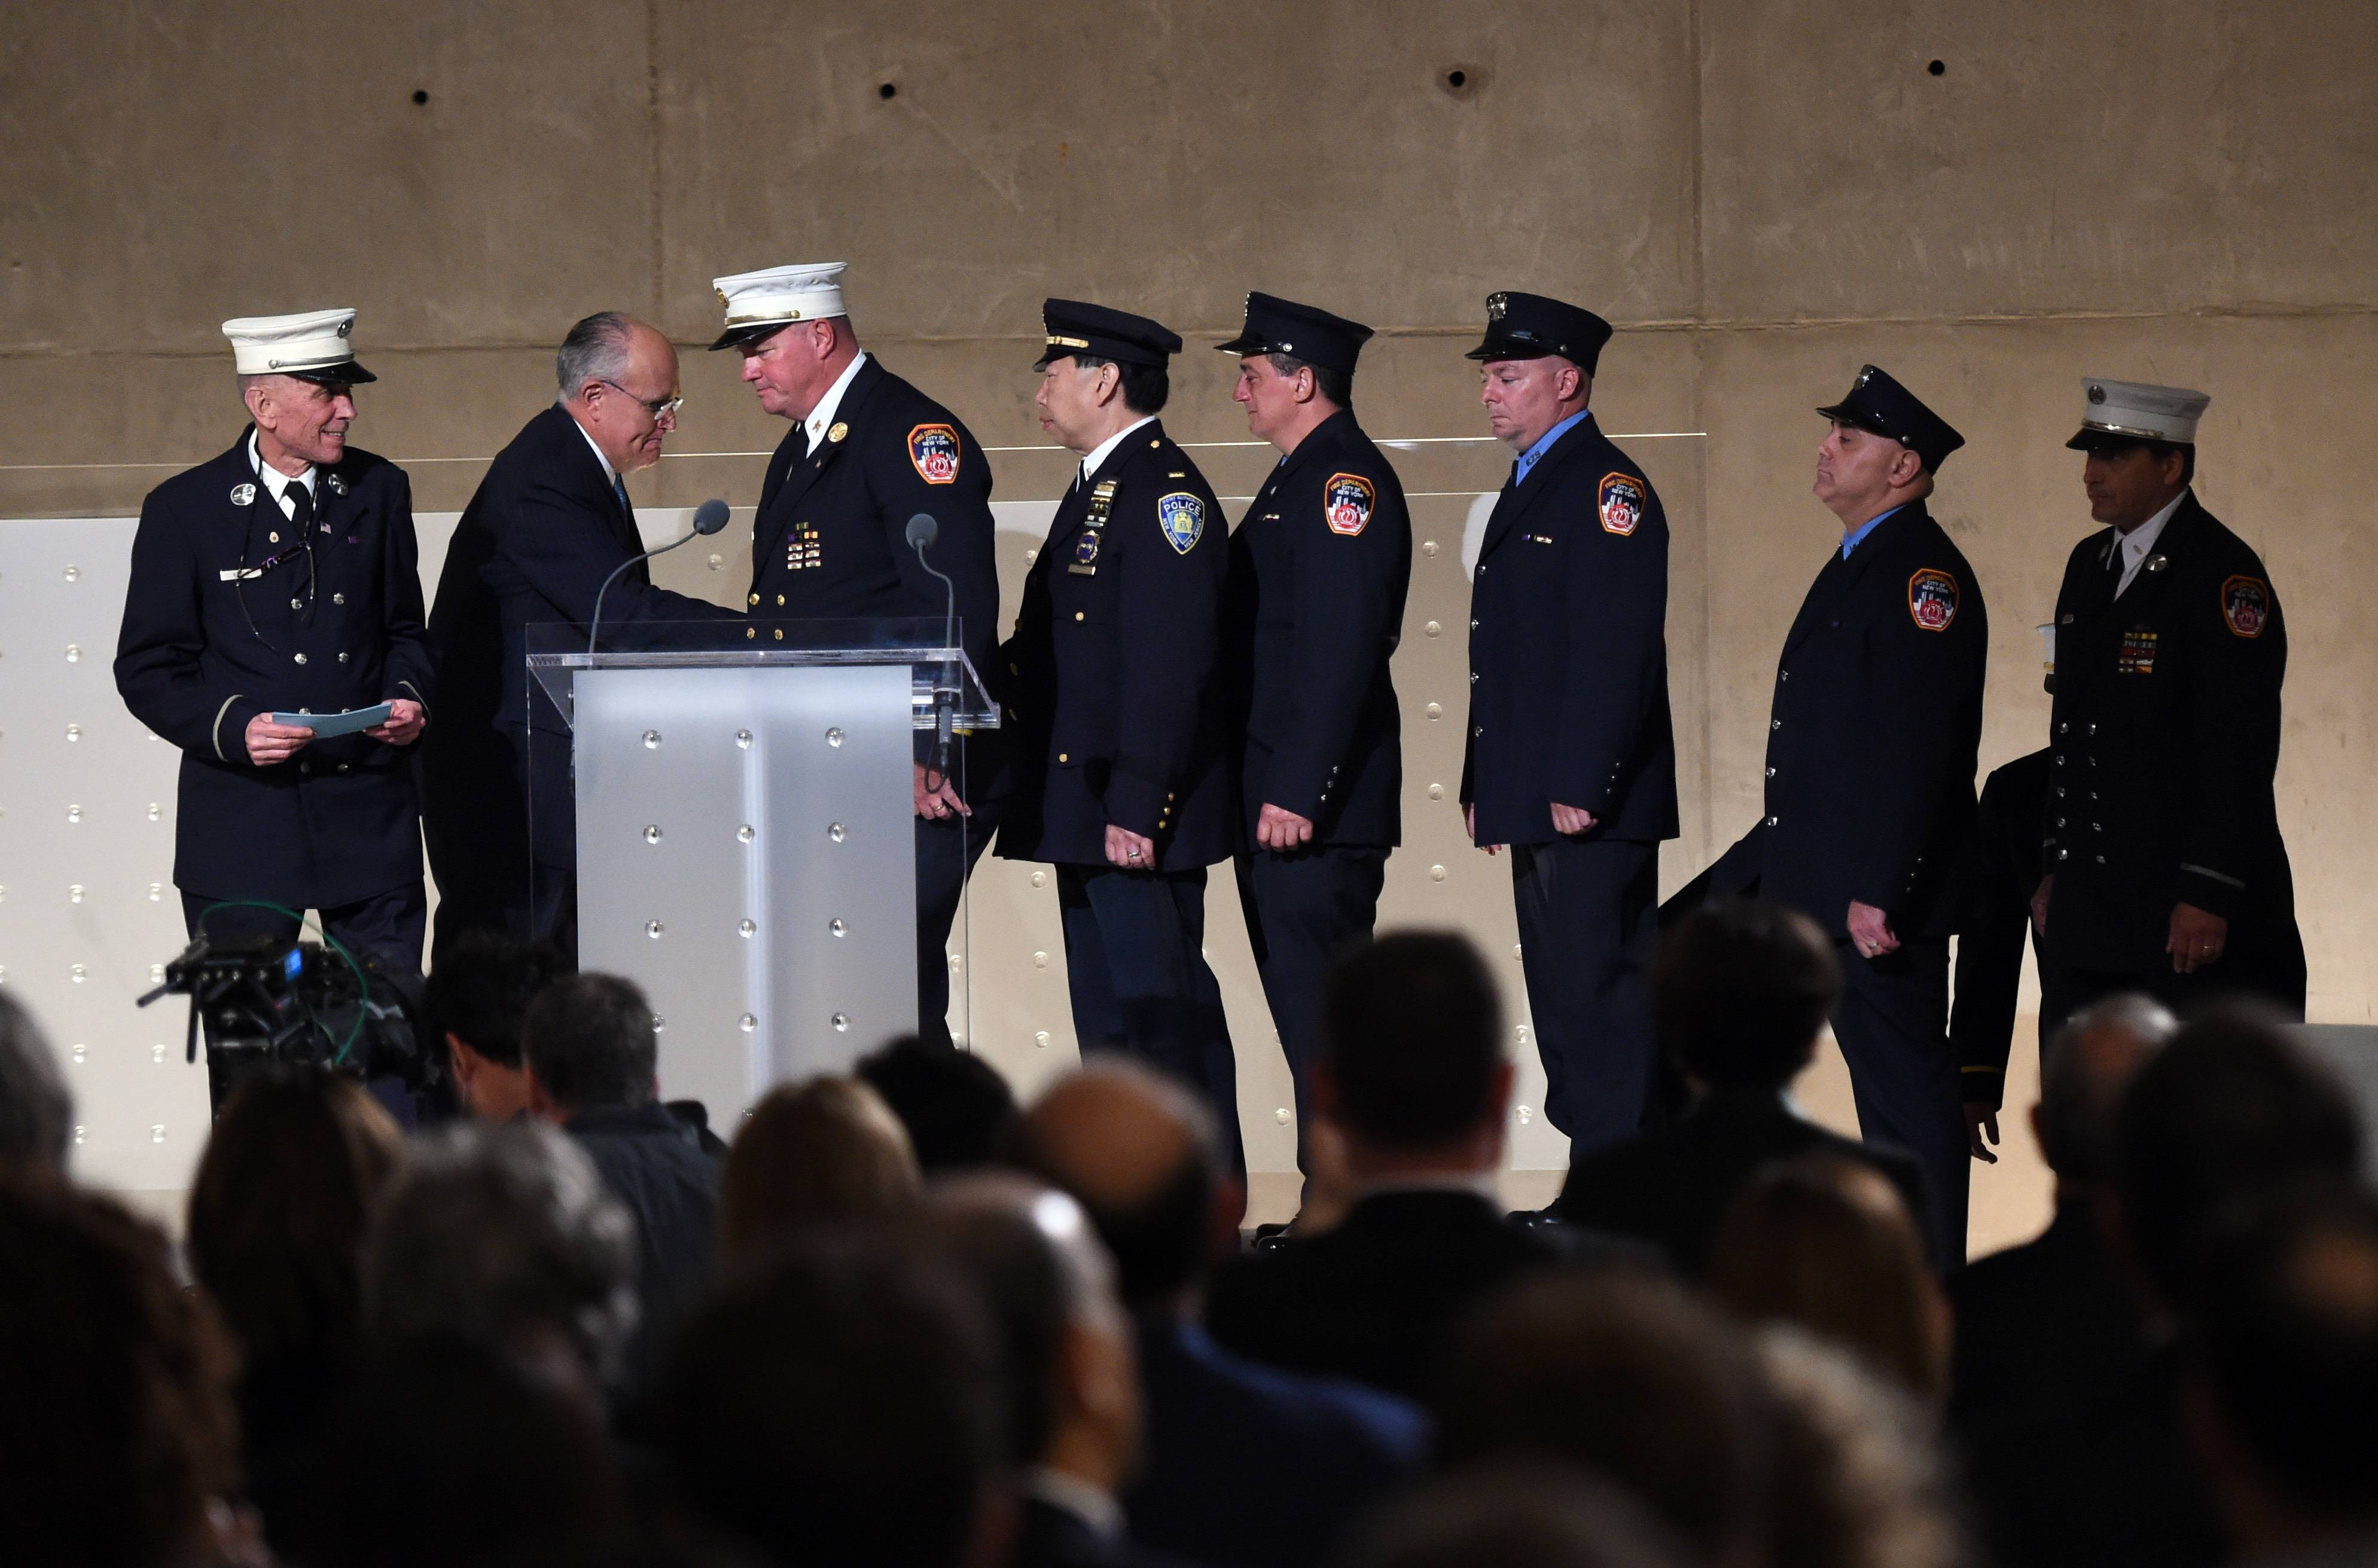 Former New York City Mayor Rudolph Giuliani greets New York City Fireman at the dedication.